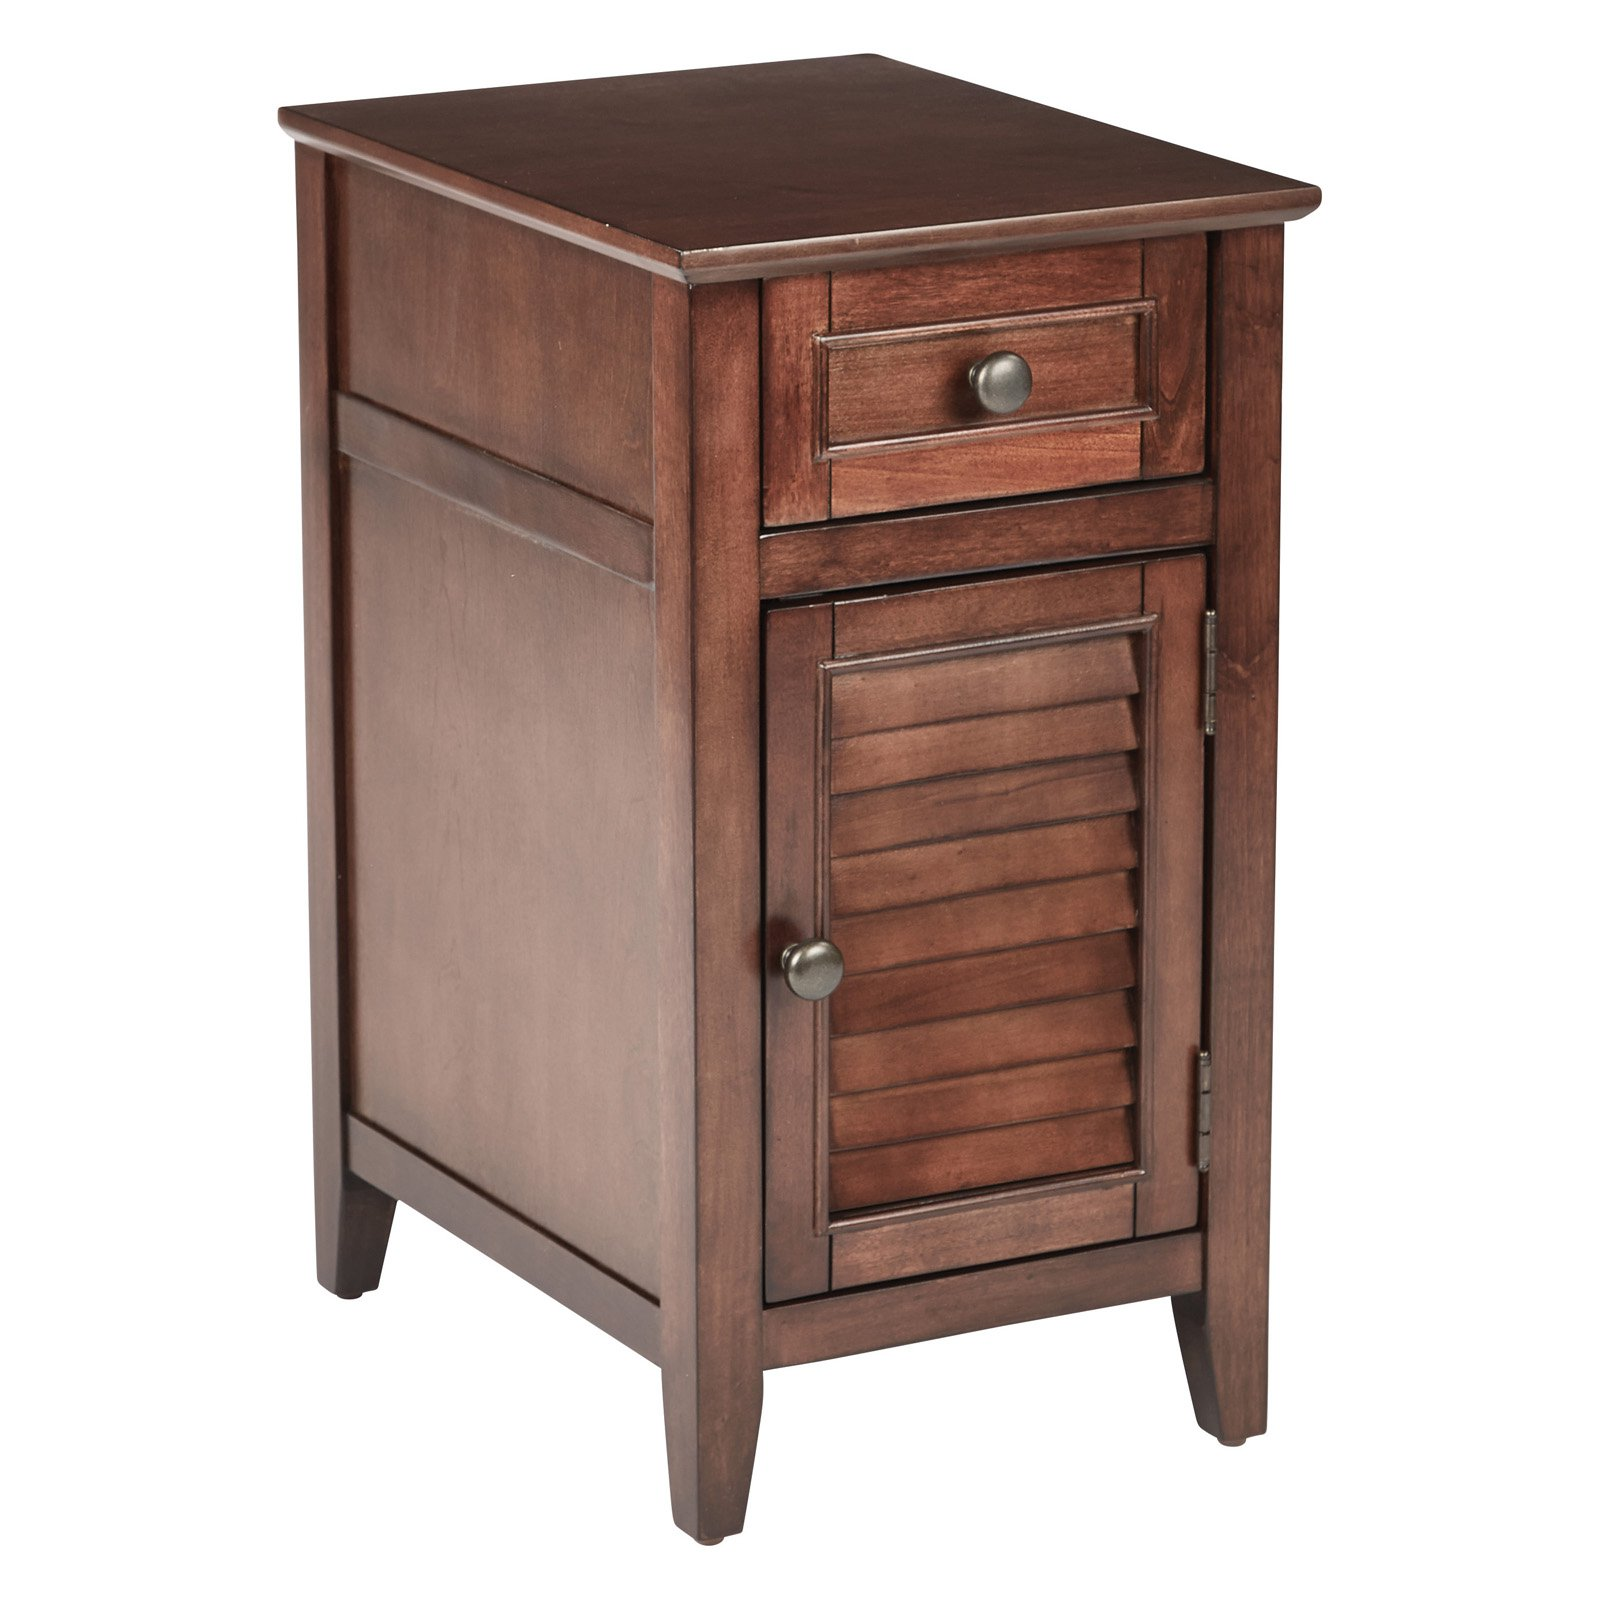 Brooke Chair Side Table, Chestnut